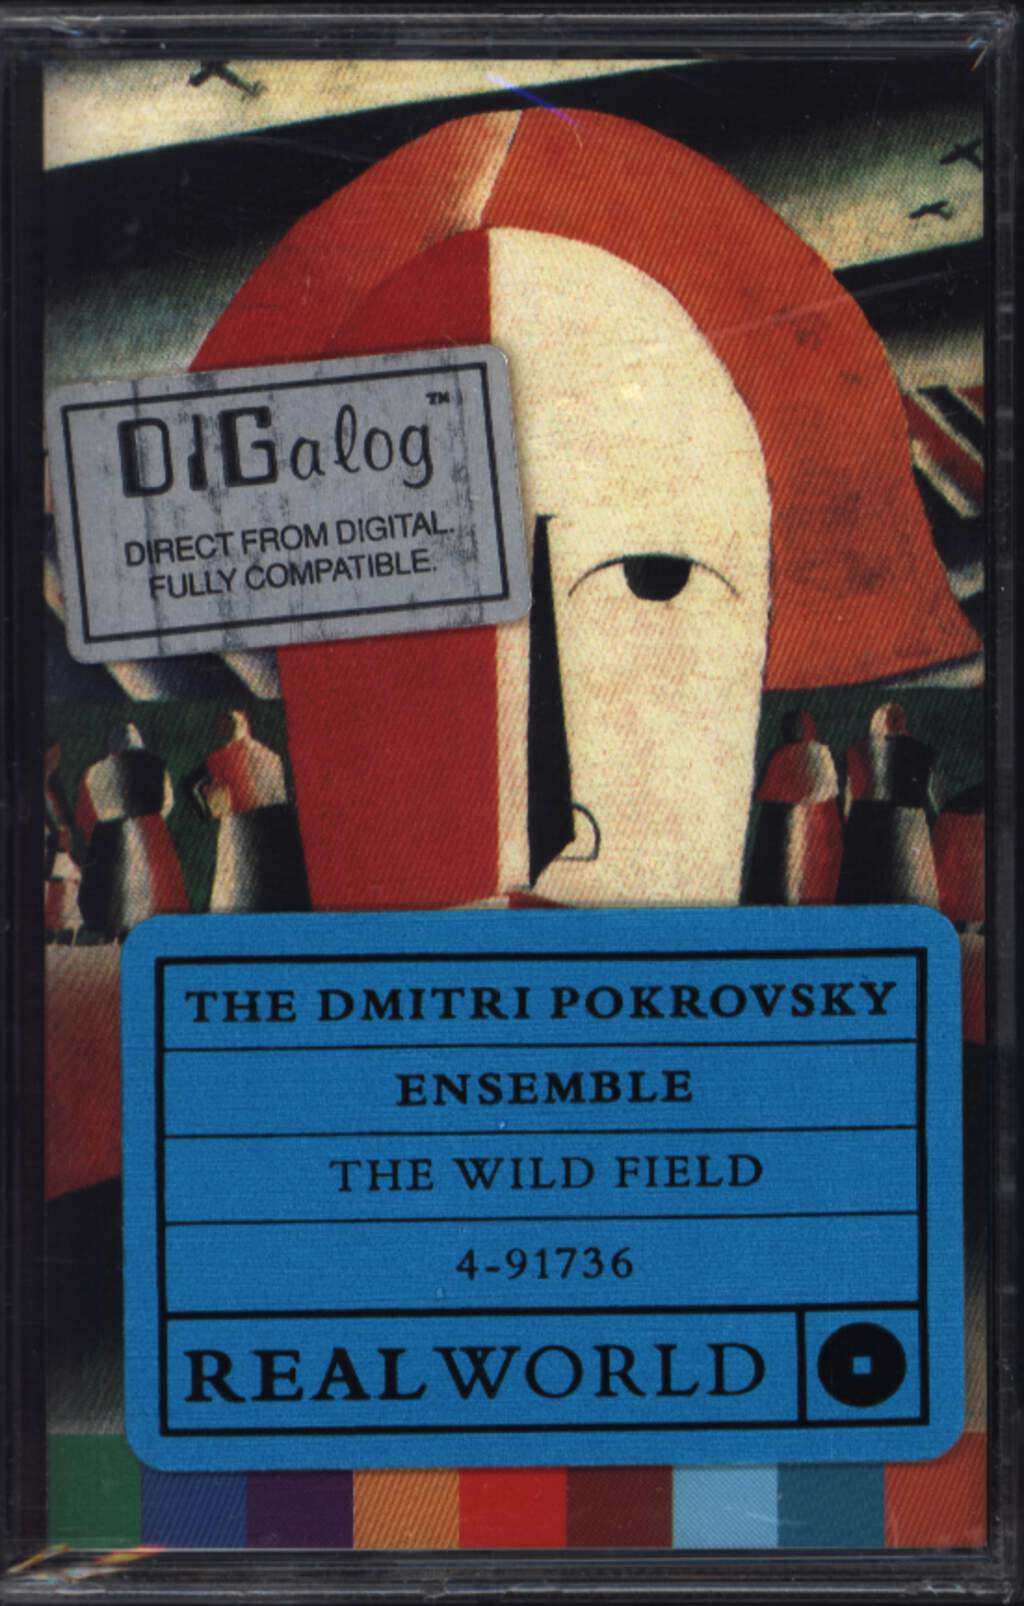 The Dmitri Pokrovsky Ensemble: The Wild Field, Compact Cassette